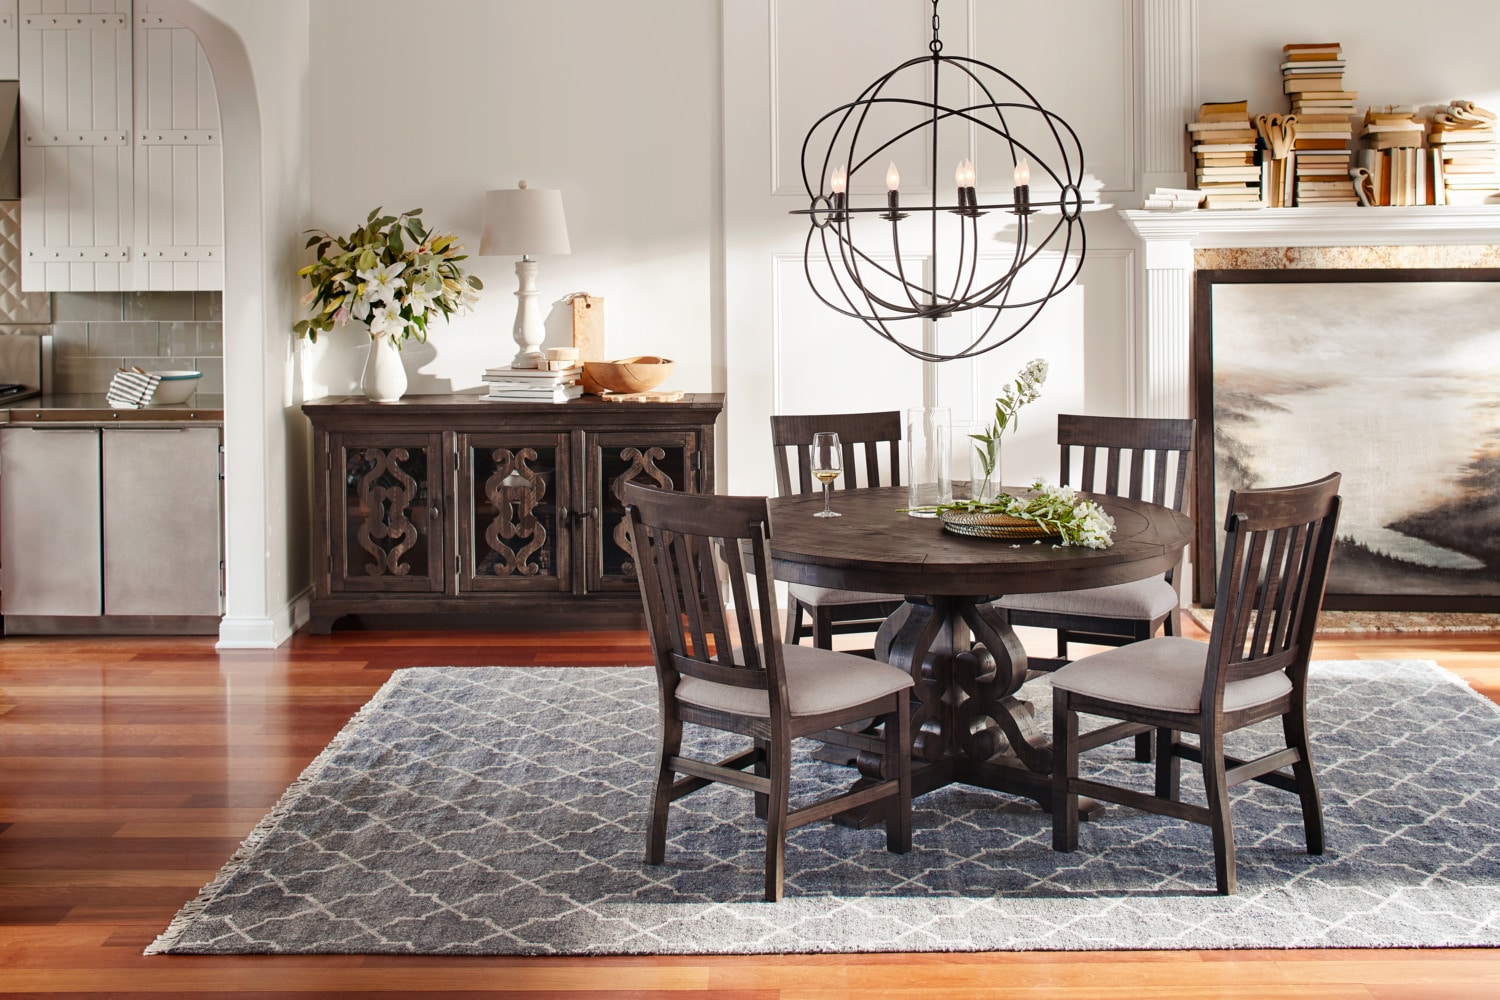 value city dining table and chairs three legged chair antique charthouse round 4 side - charcoal | furniture mattresses